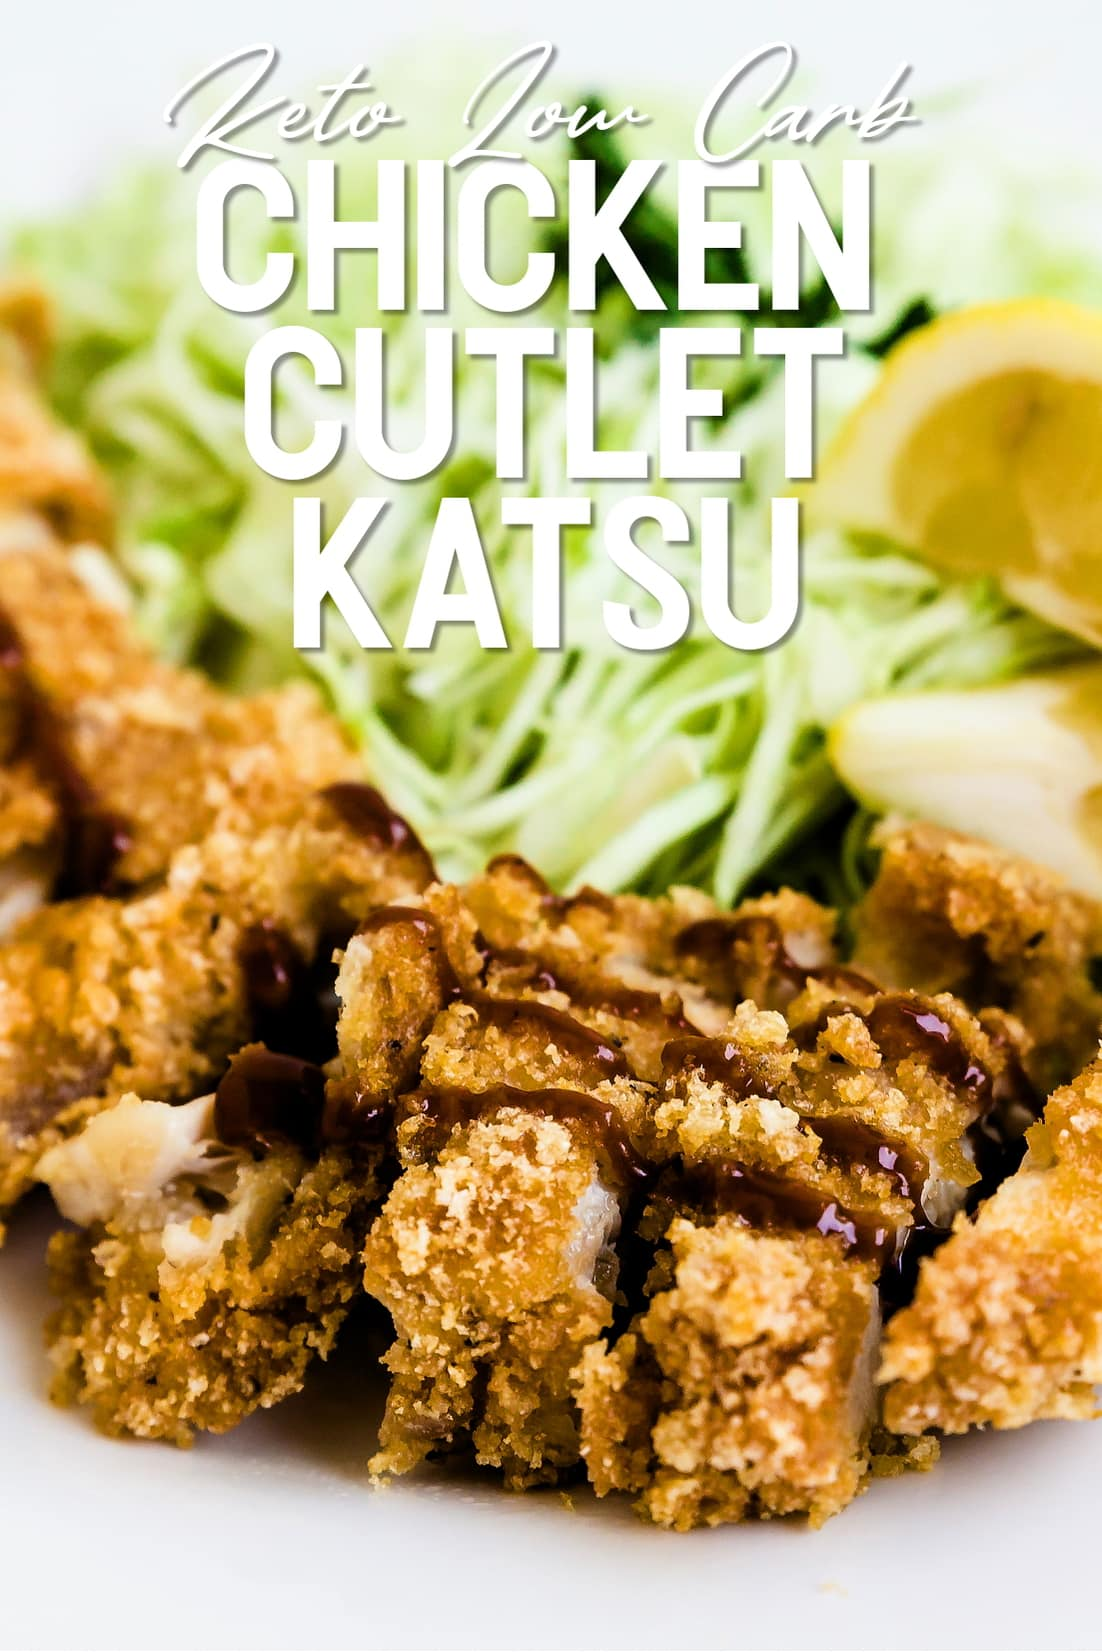 Keto Chicken Cutlet Katsu cut into slices and served with tonkatsu sauce